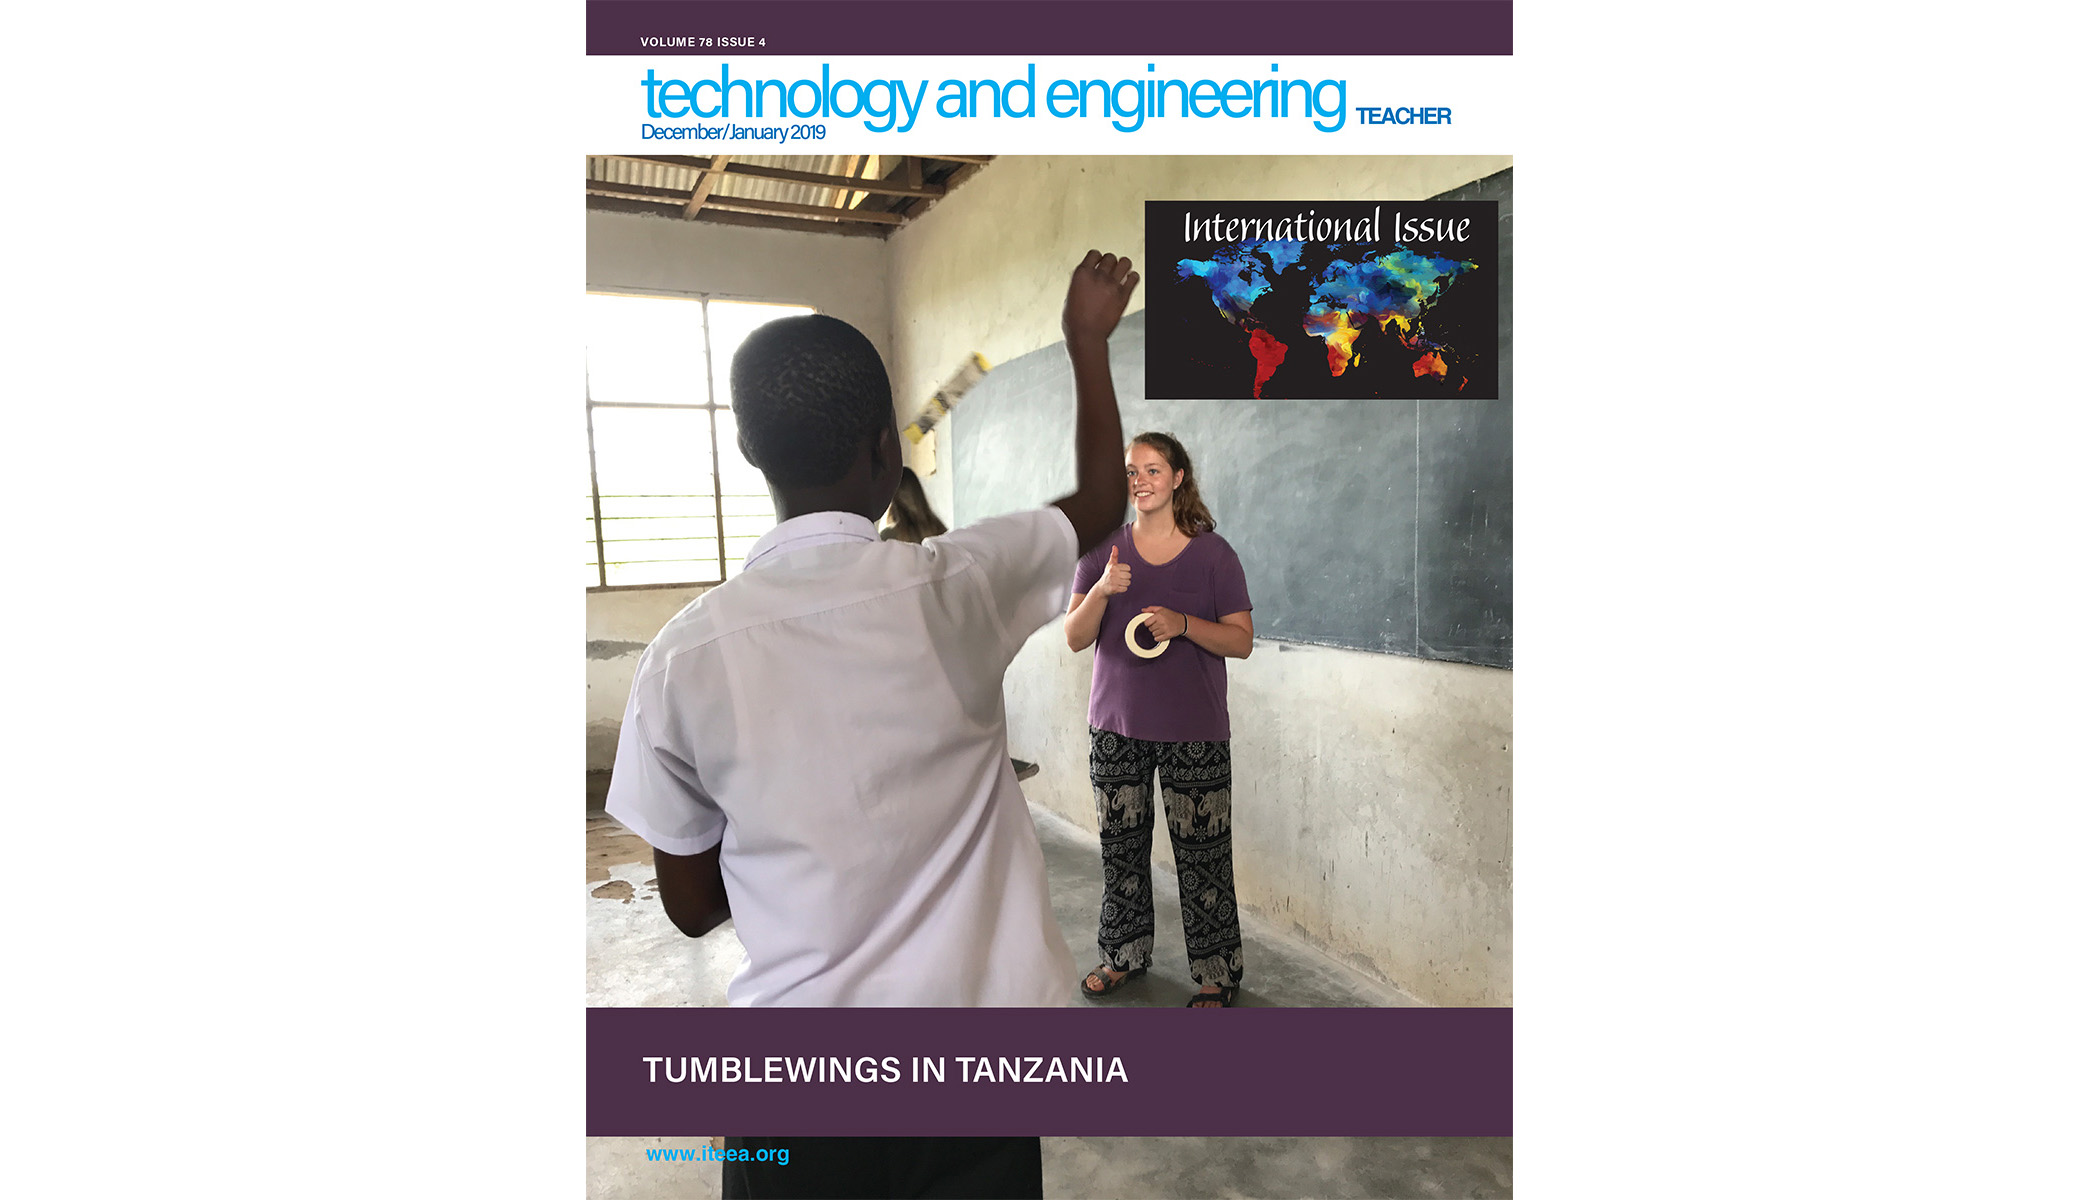 Here's a Sampling of What's Available in the December/January 2019 Issue of Technology and Engineering Teacher